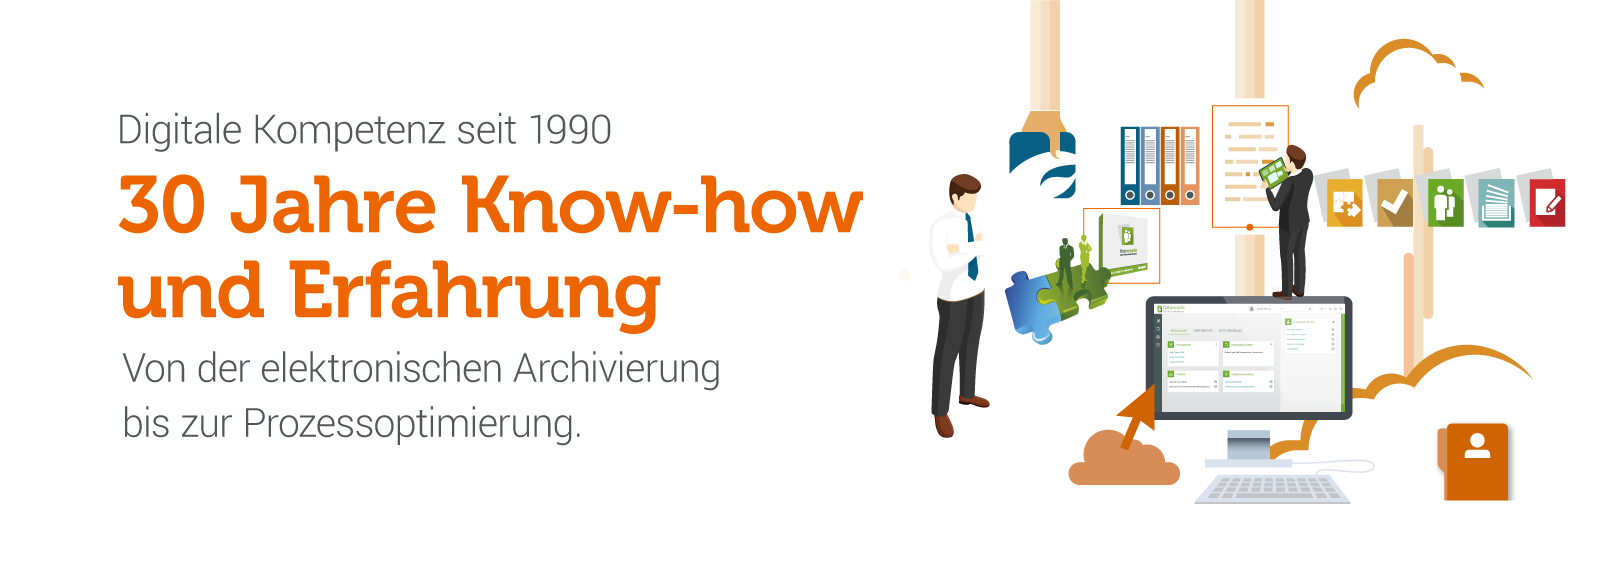 forcont - 30 Jahre Know-how